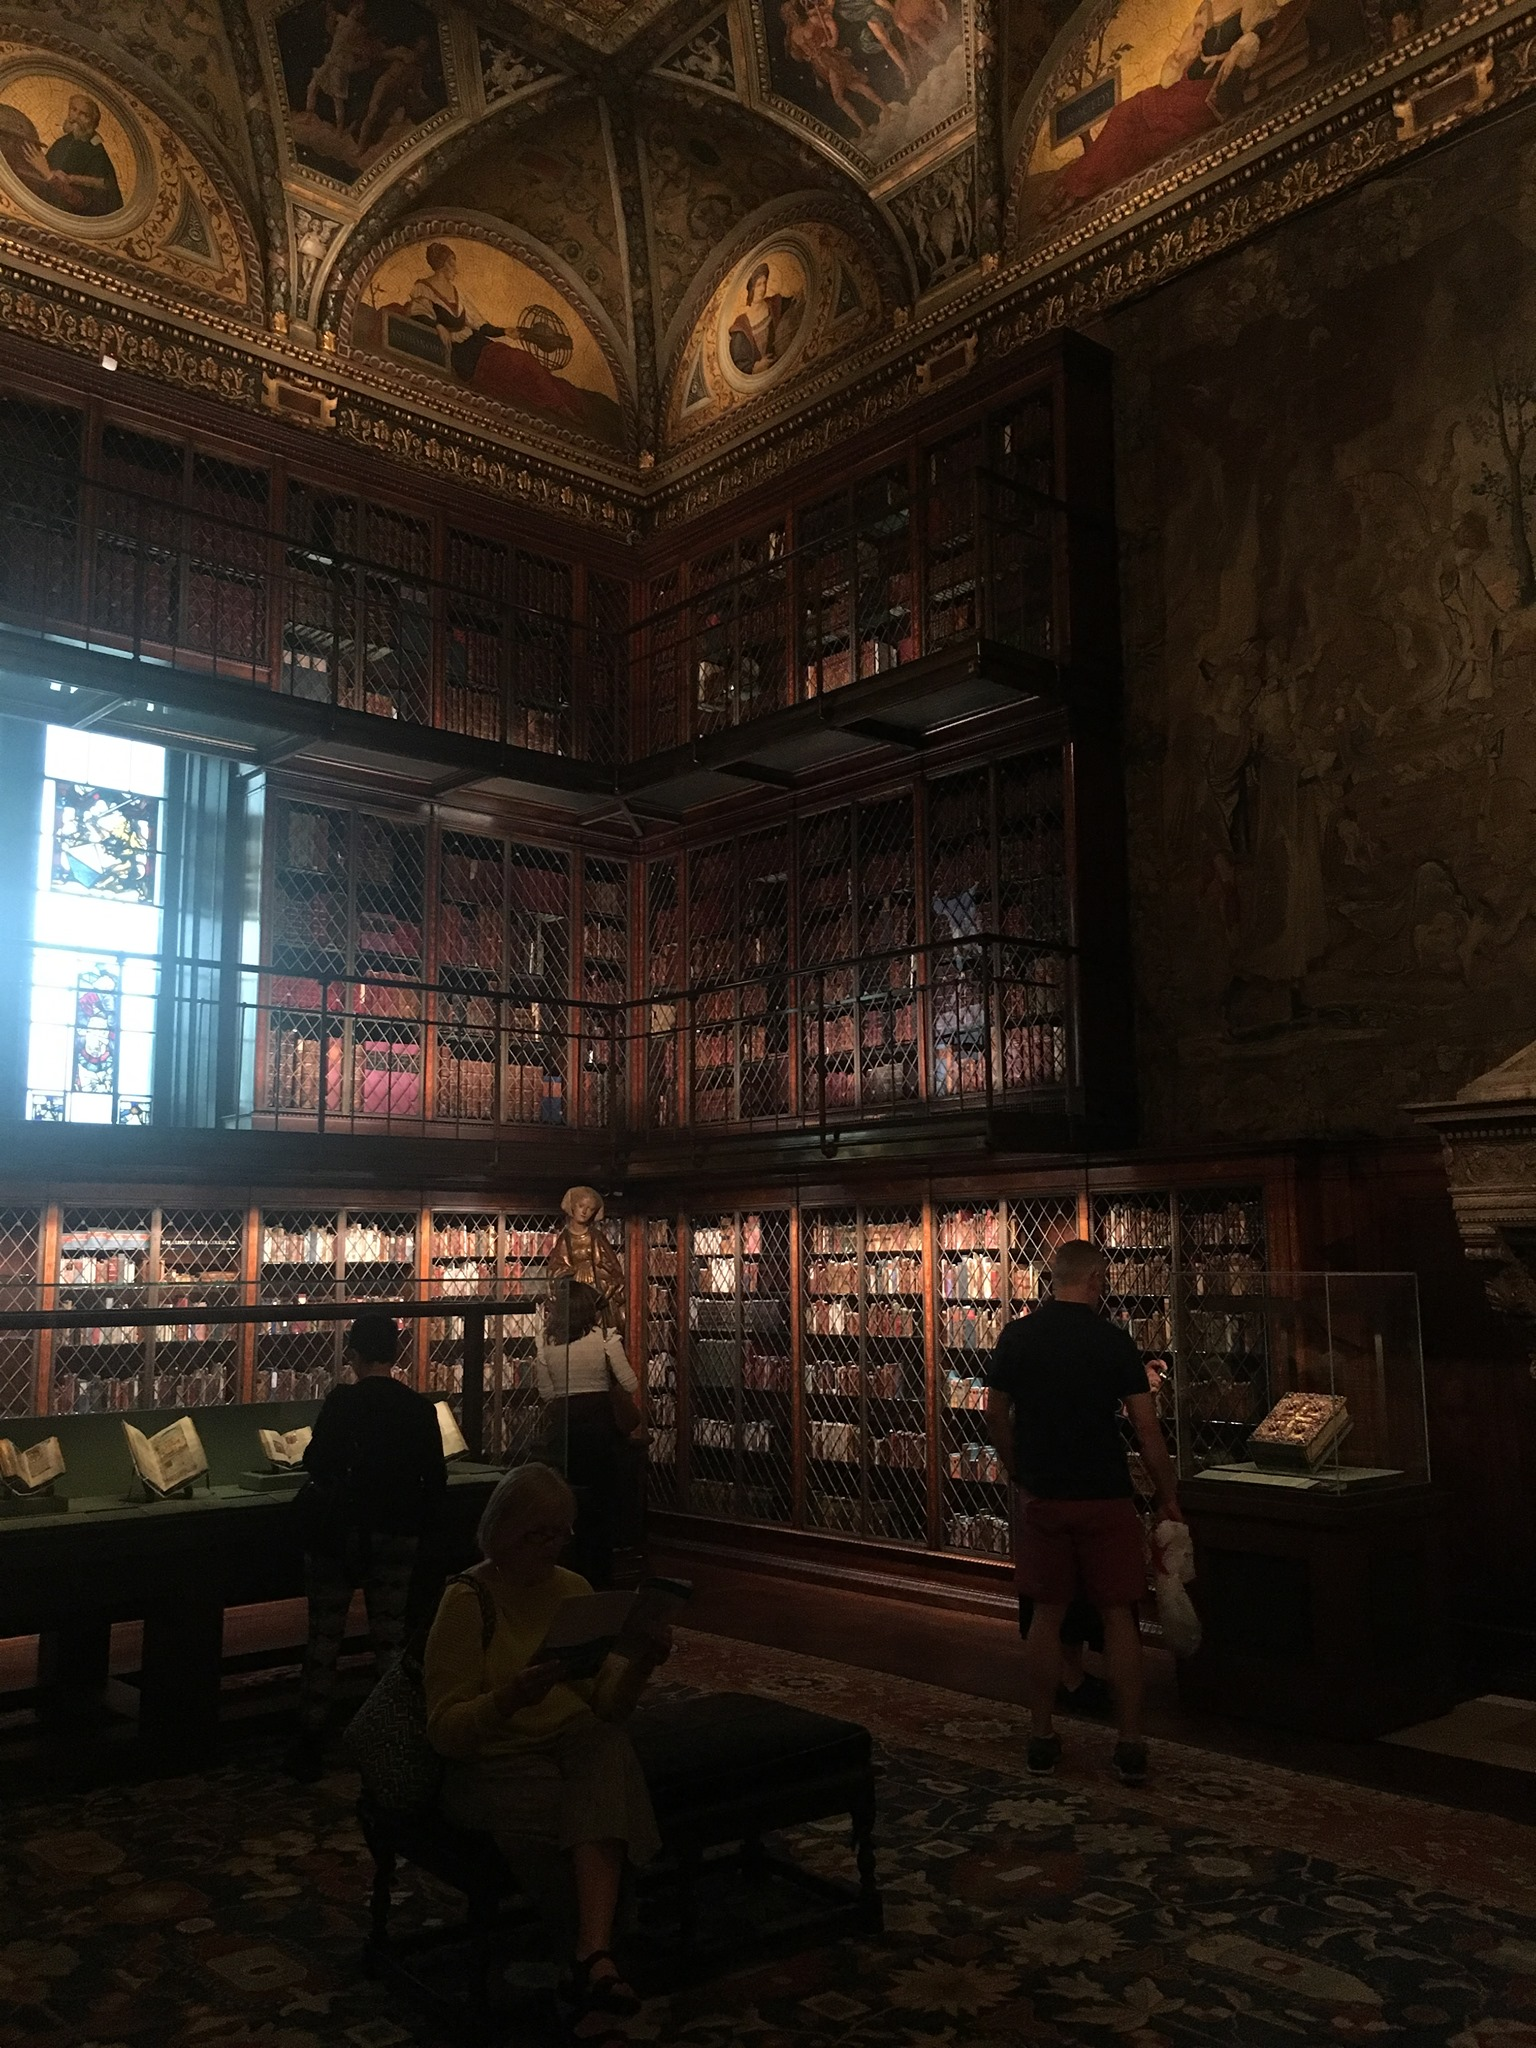 Interior of the Morgan Library in New York